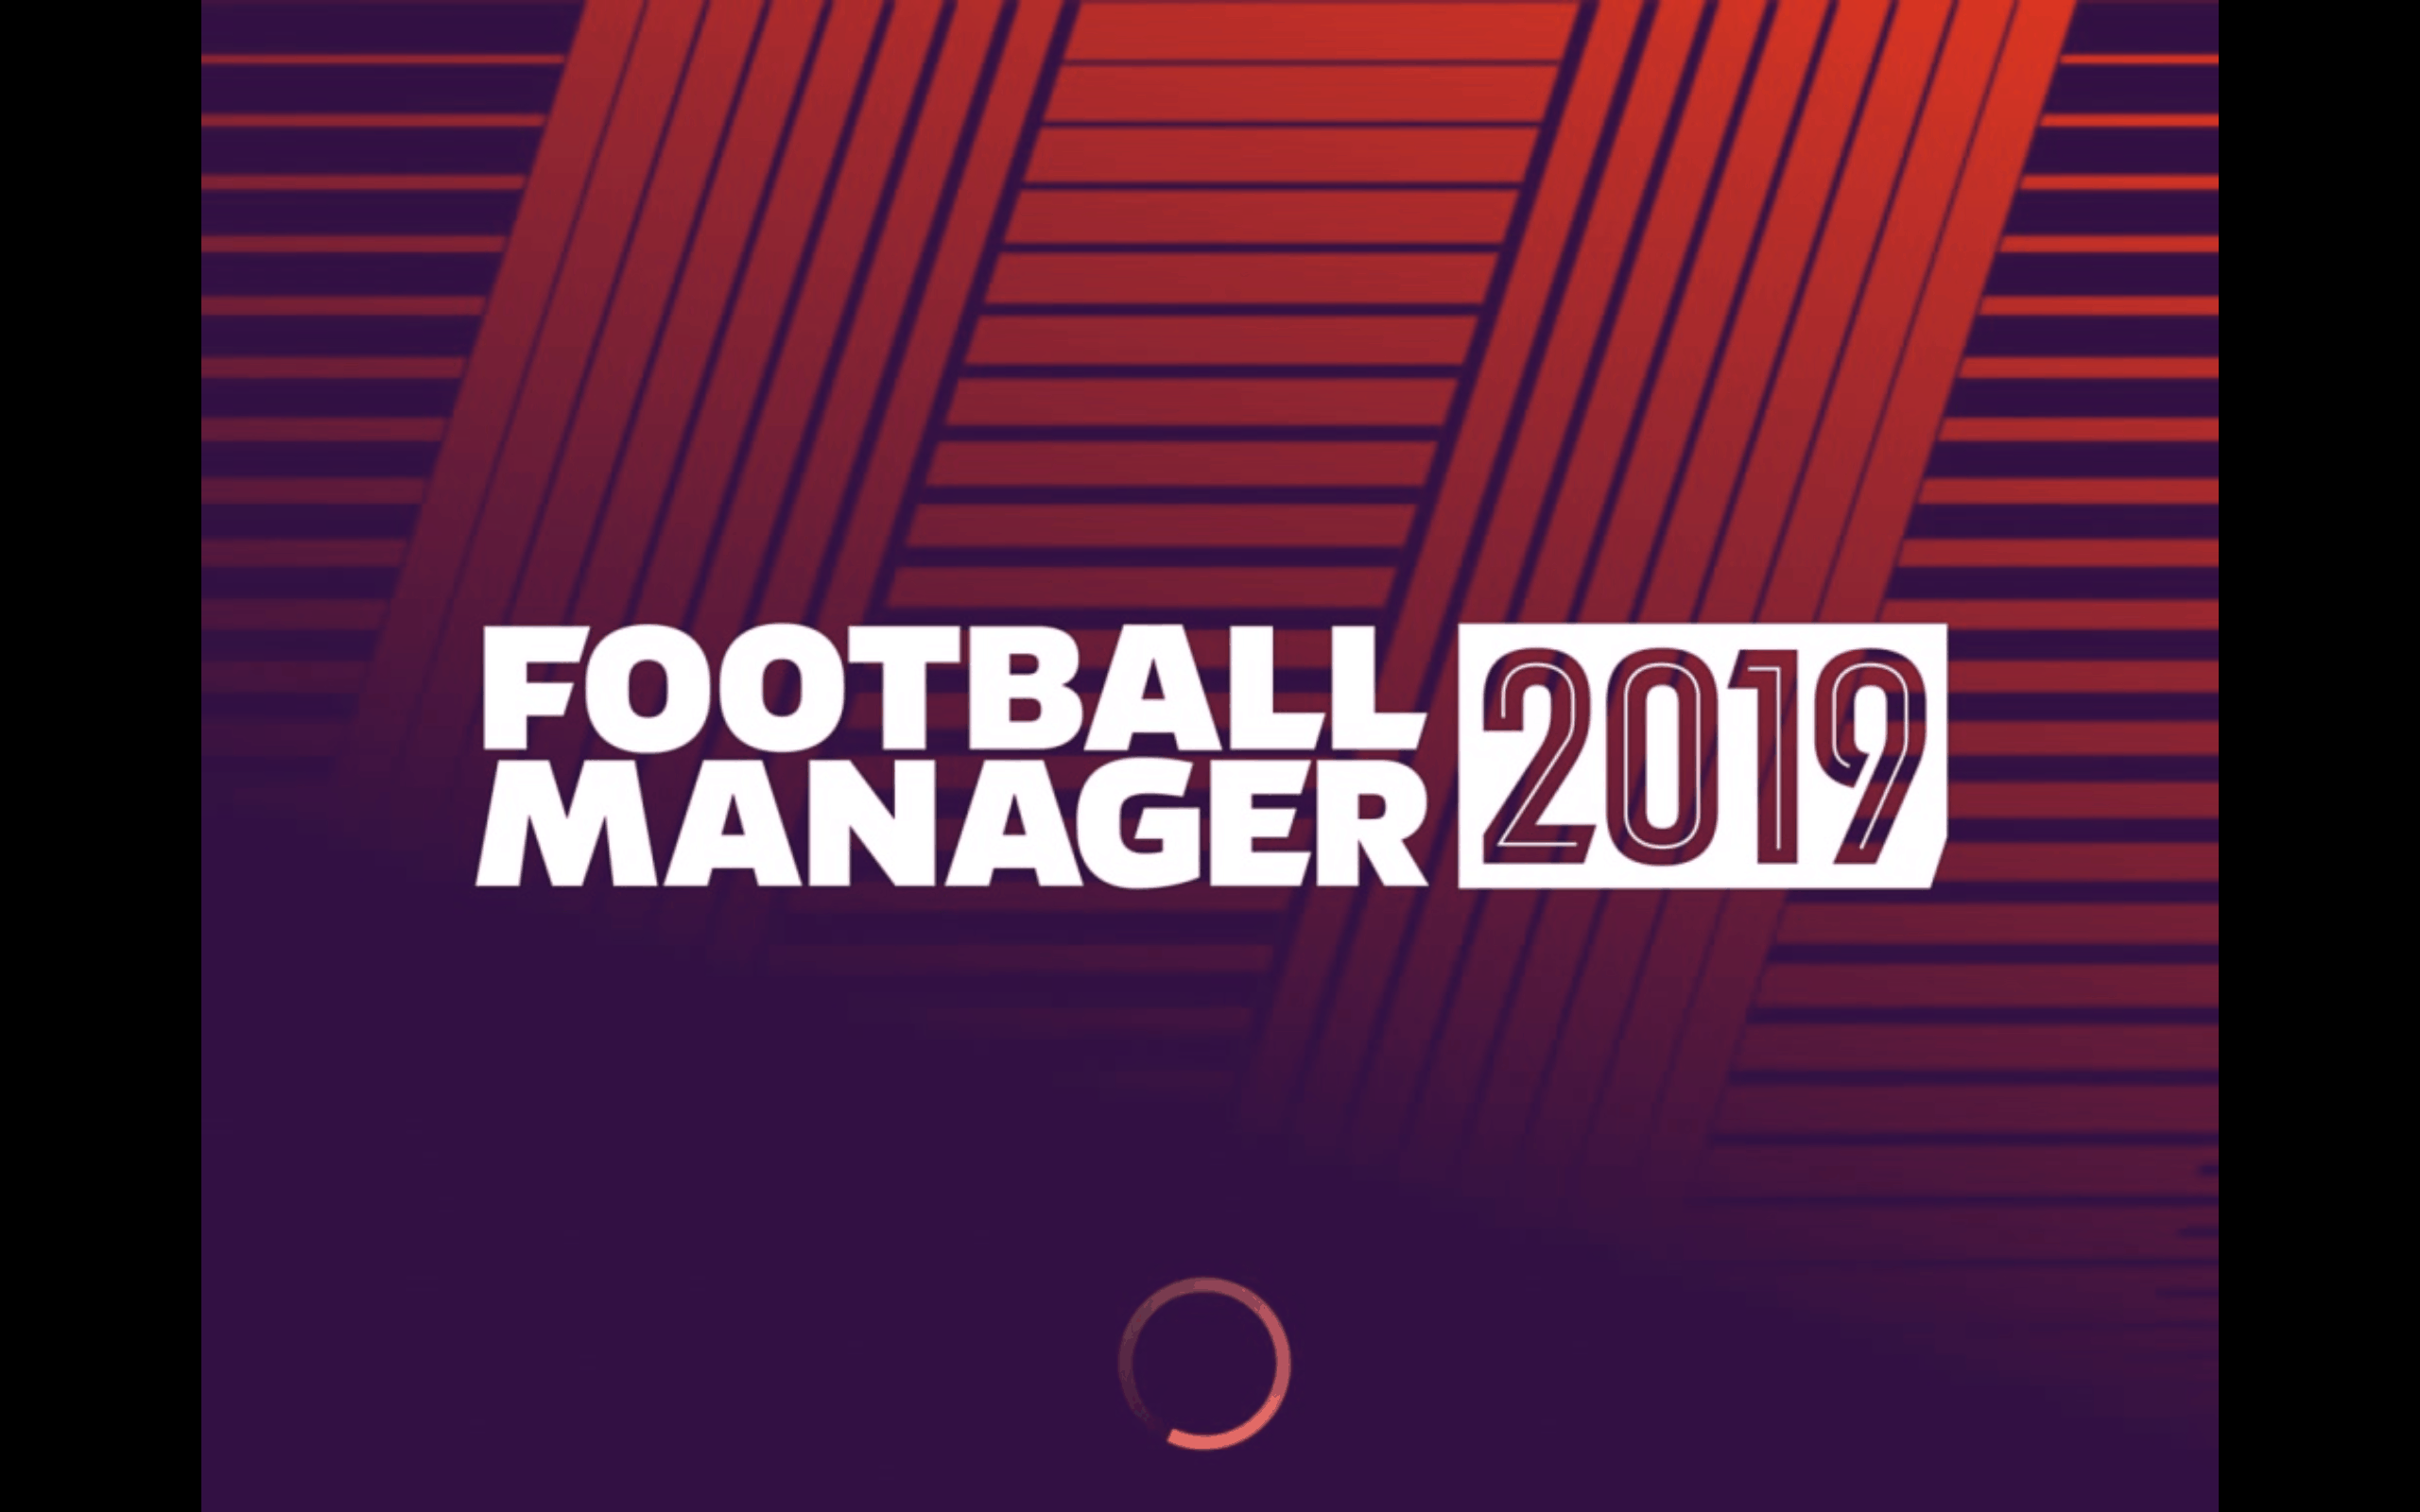 Football Manager 2019 for Mac 中文版足球经理2019-Mac毒